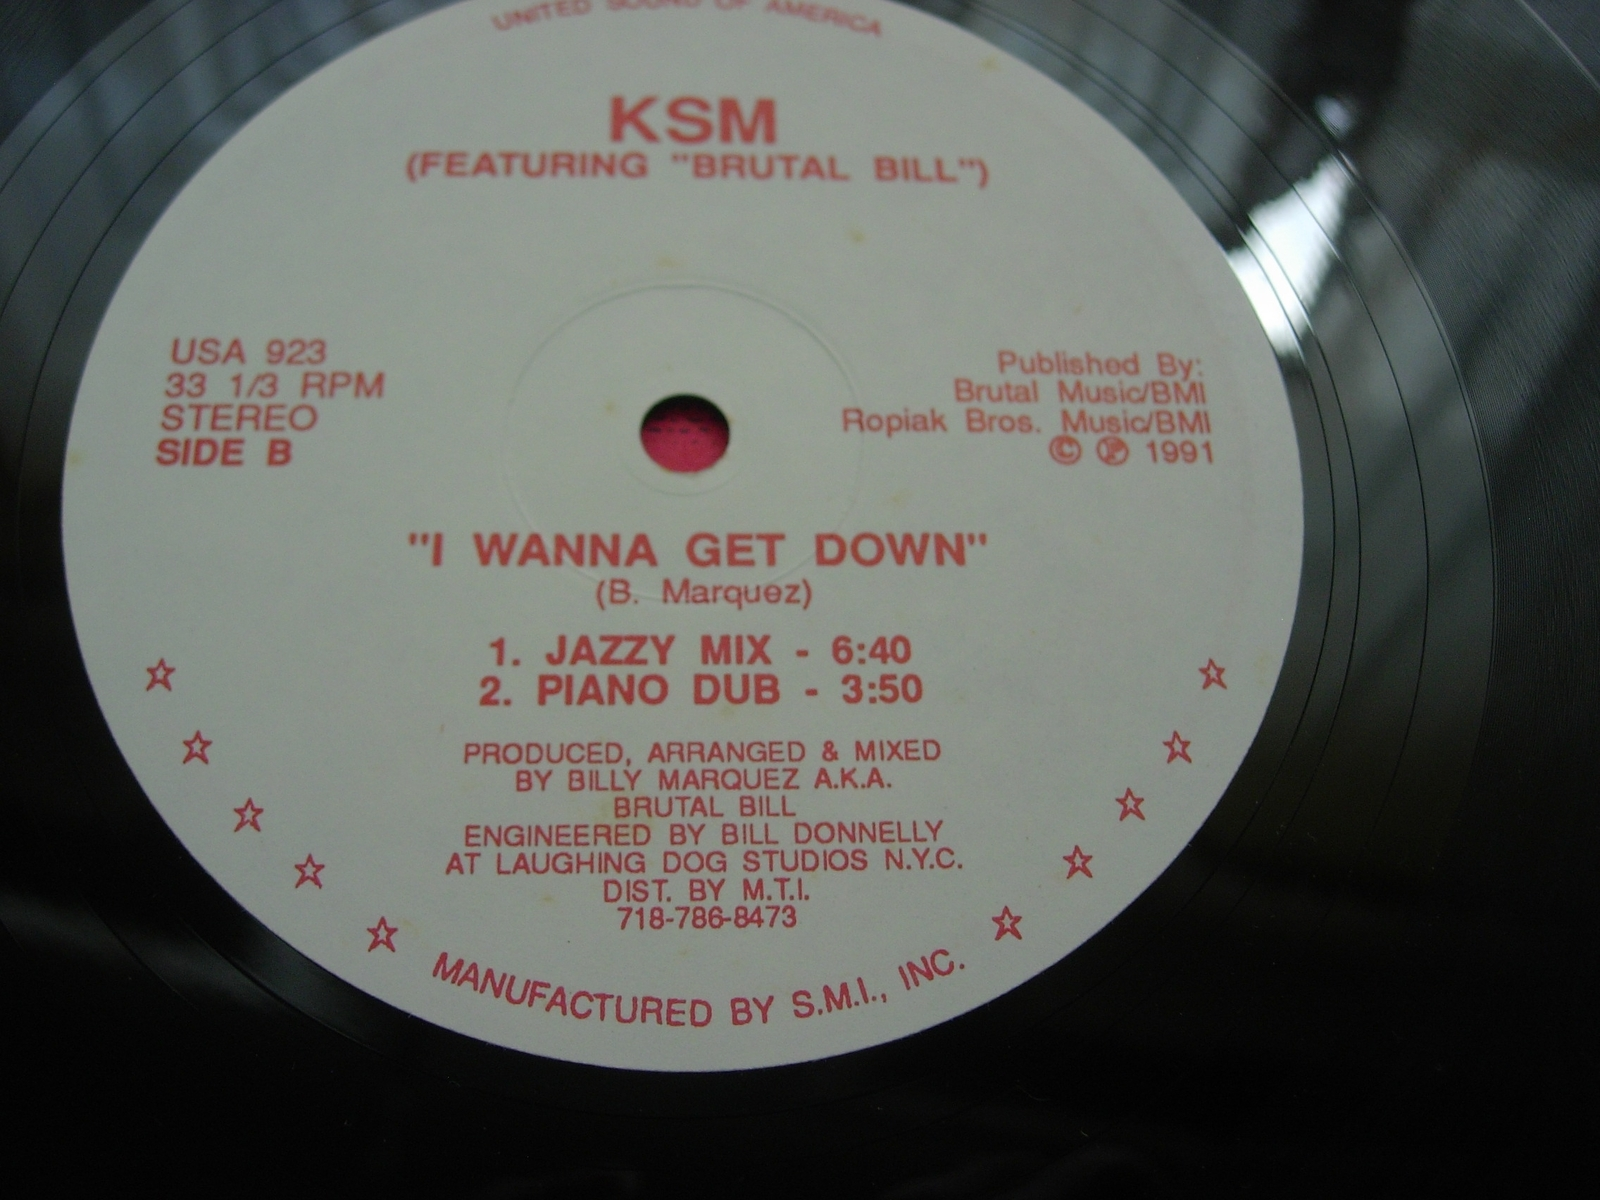 KSM featuring Brutal Bill - I Wanna Get Down - United Sound of America USA 923